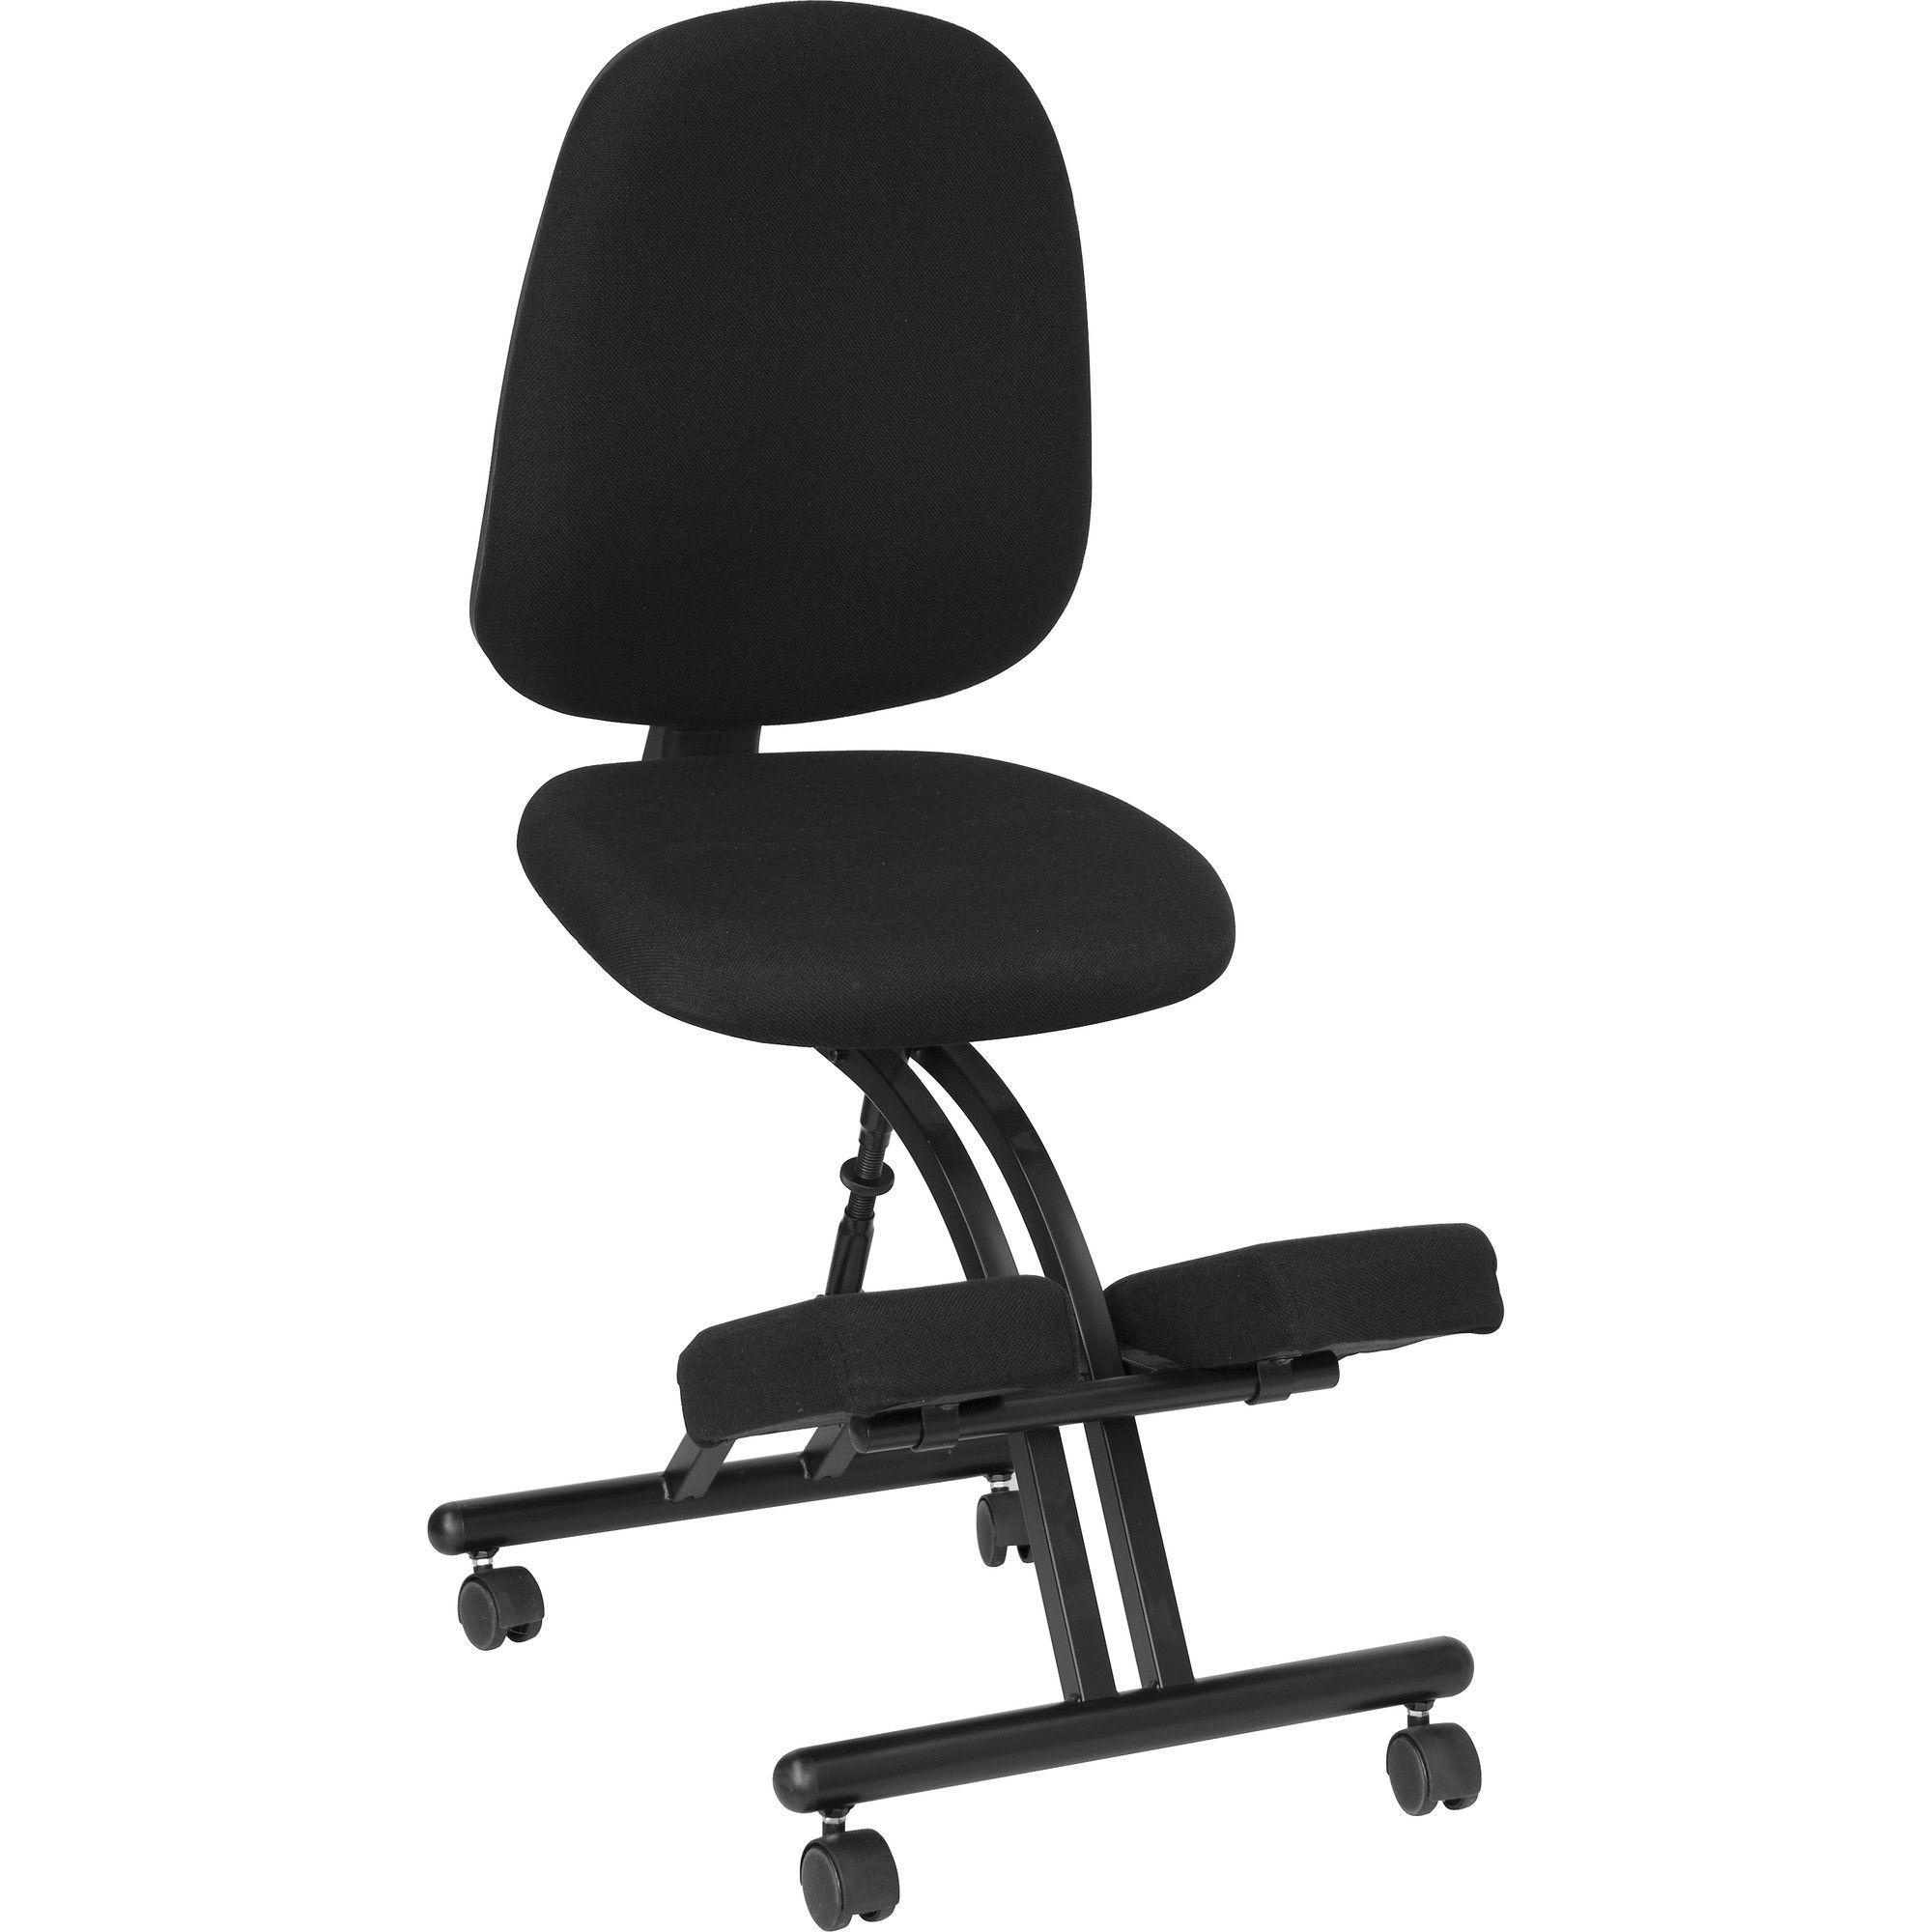 Mobile Ergonomic Kneeling Chair in Black Fabric | Products | Pinterest